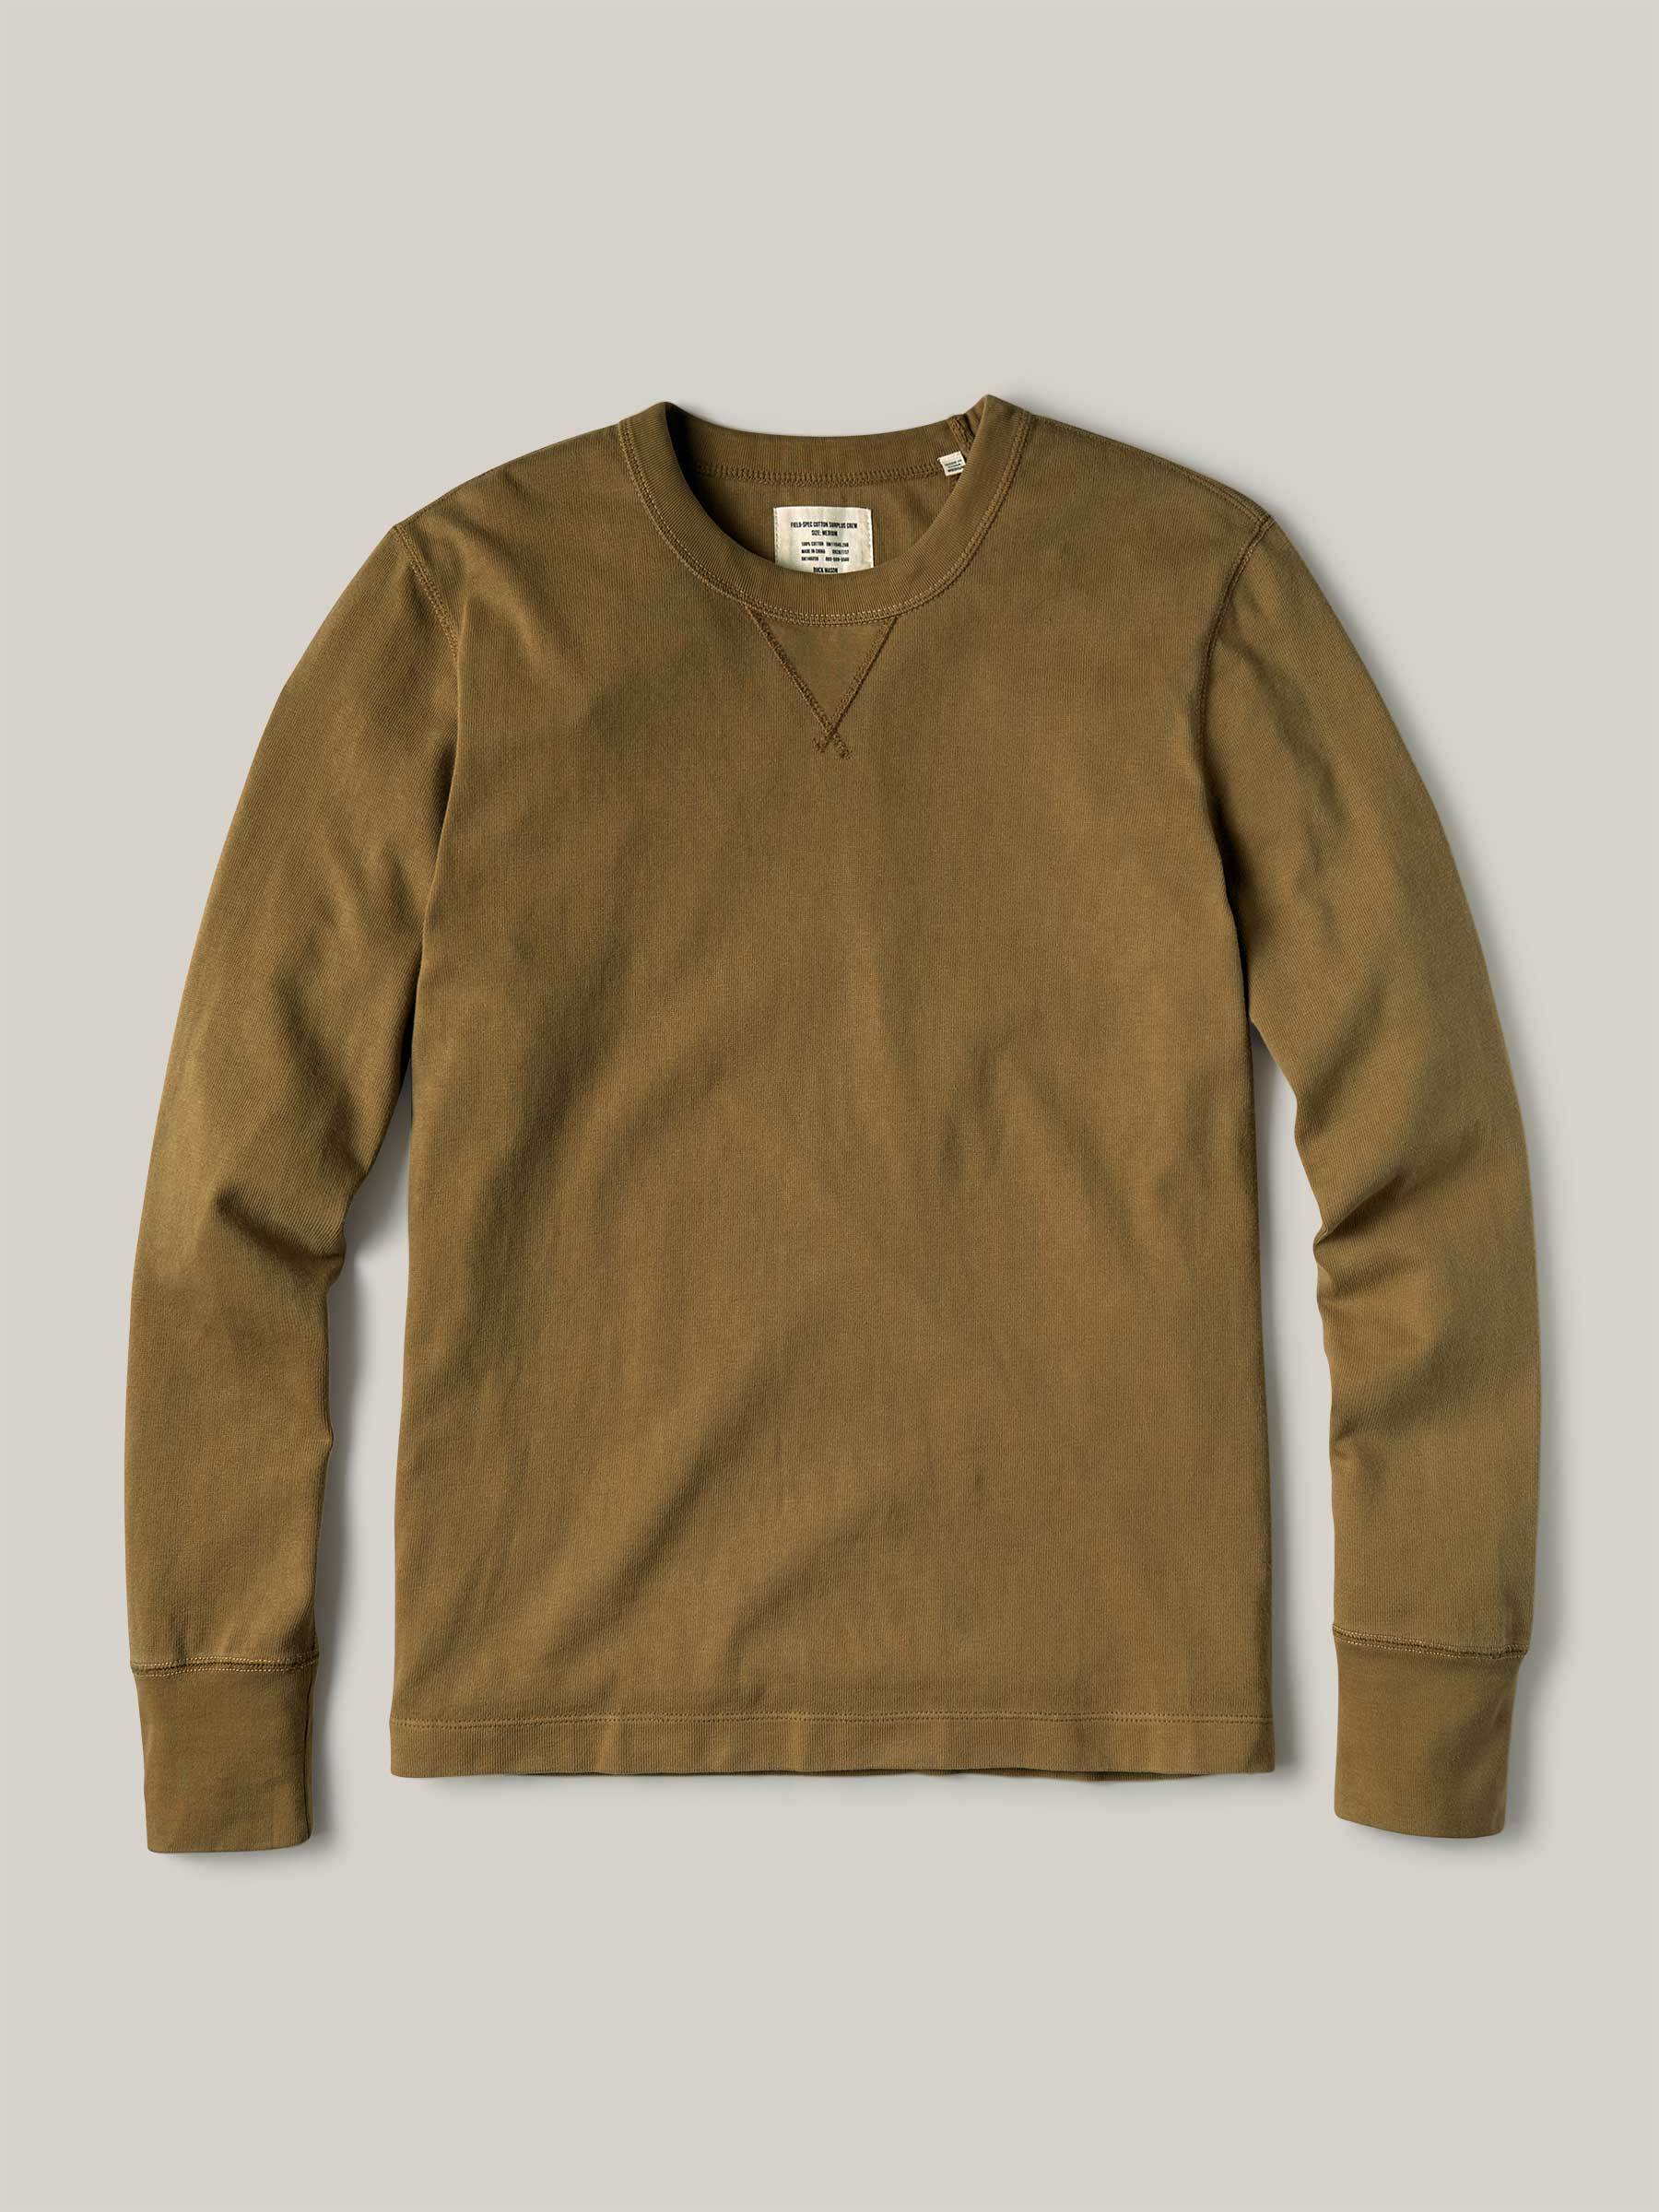 Buck Mason - Bronze Venice Wash Field-Spec Cotton Surplus Crew